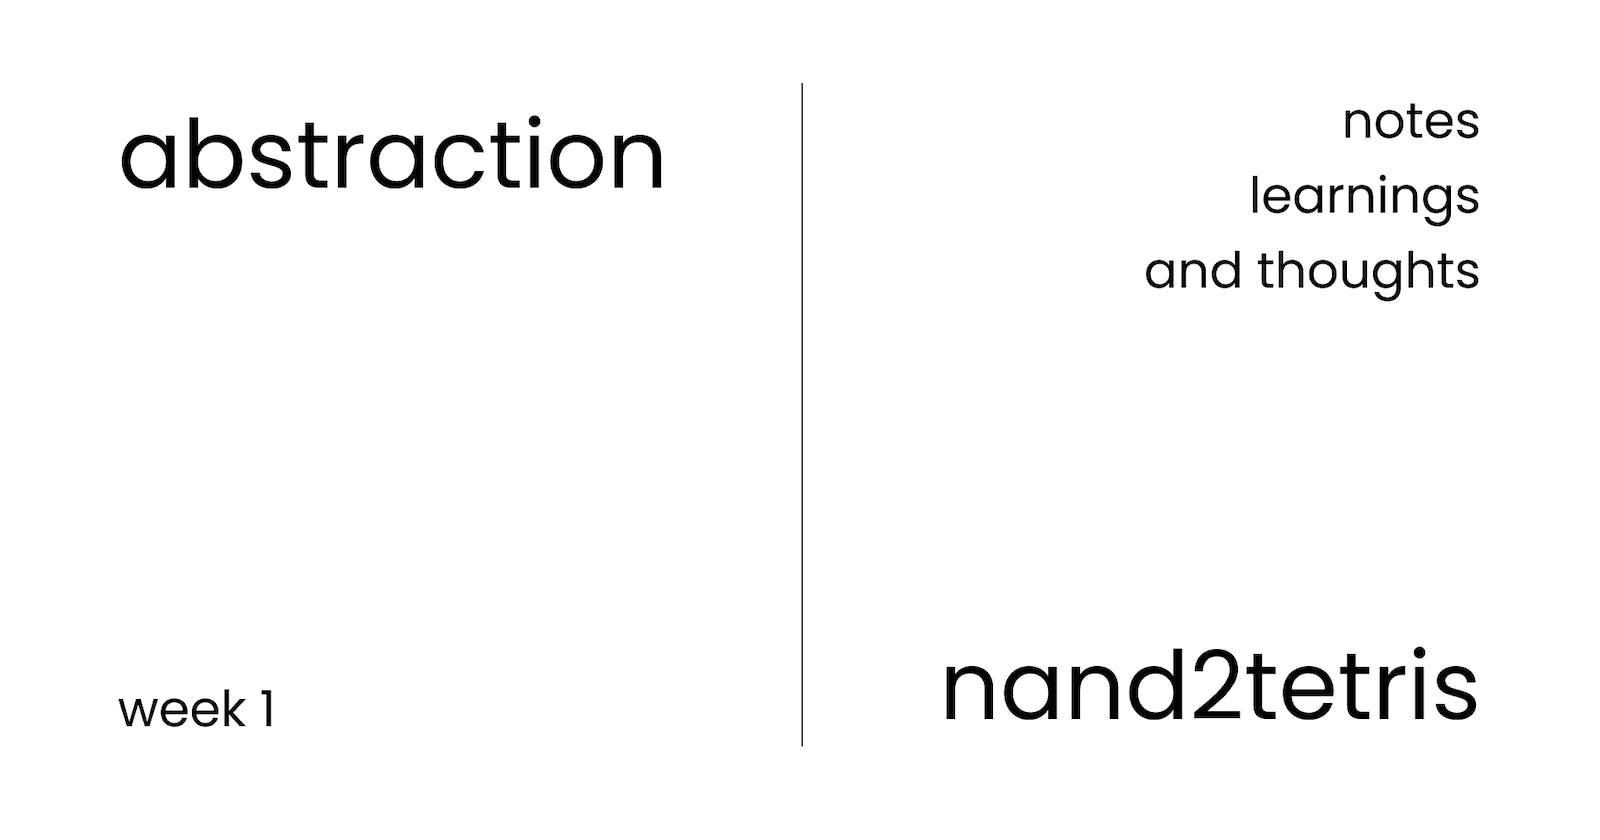 Abstraction - Learnings from Nand2Tetris